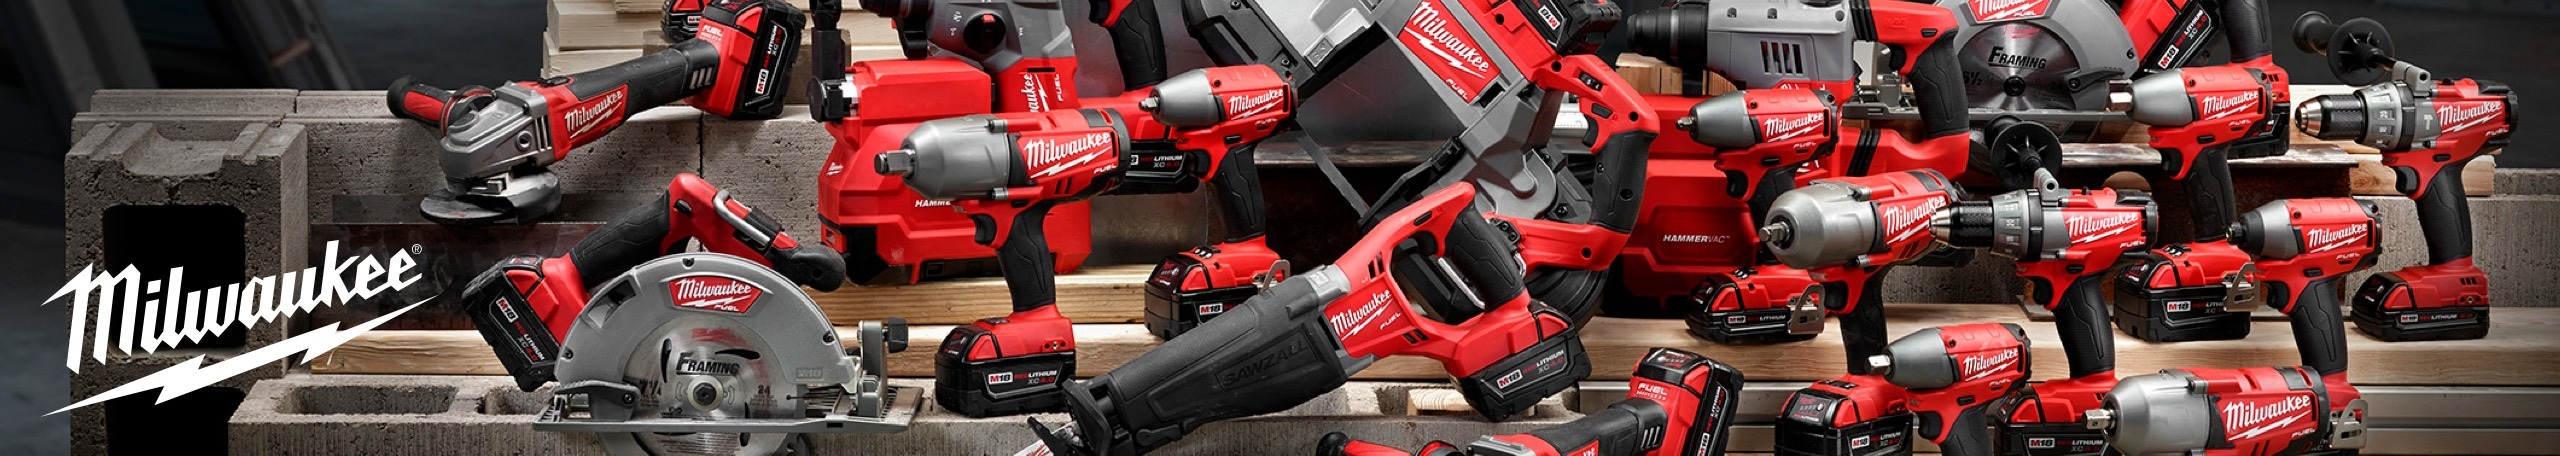 Shop Milwaukee power tools at Bladen Builders Supply